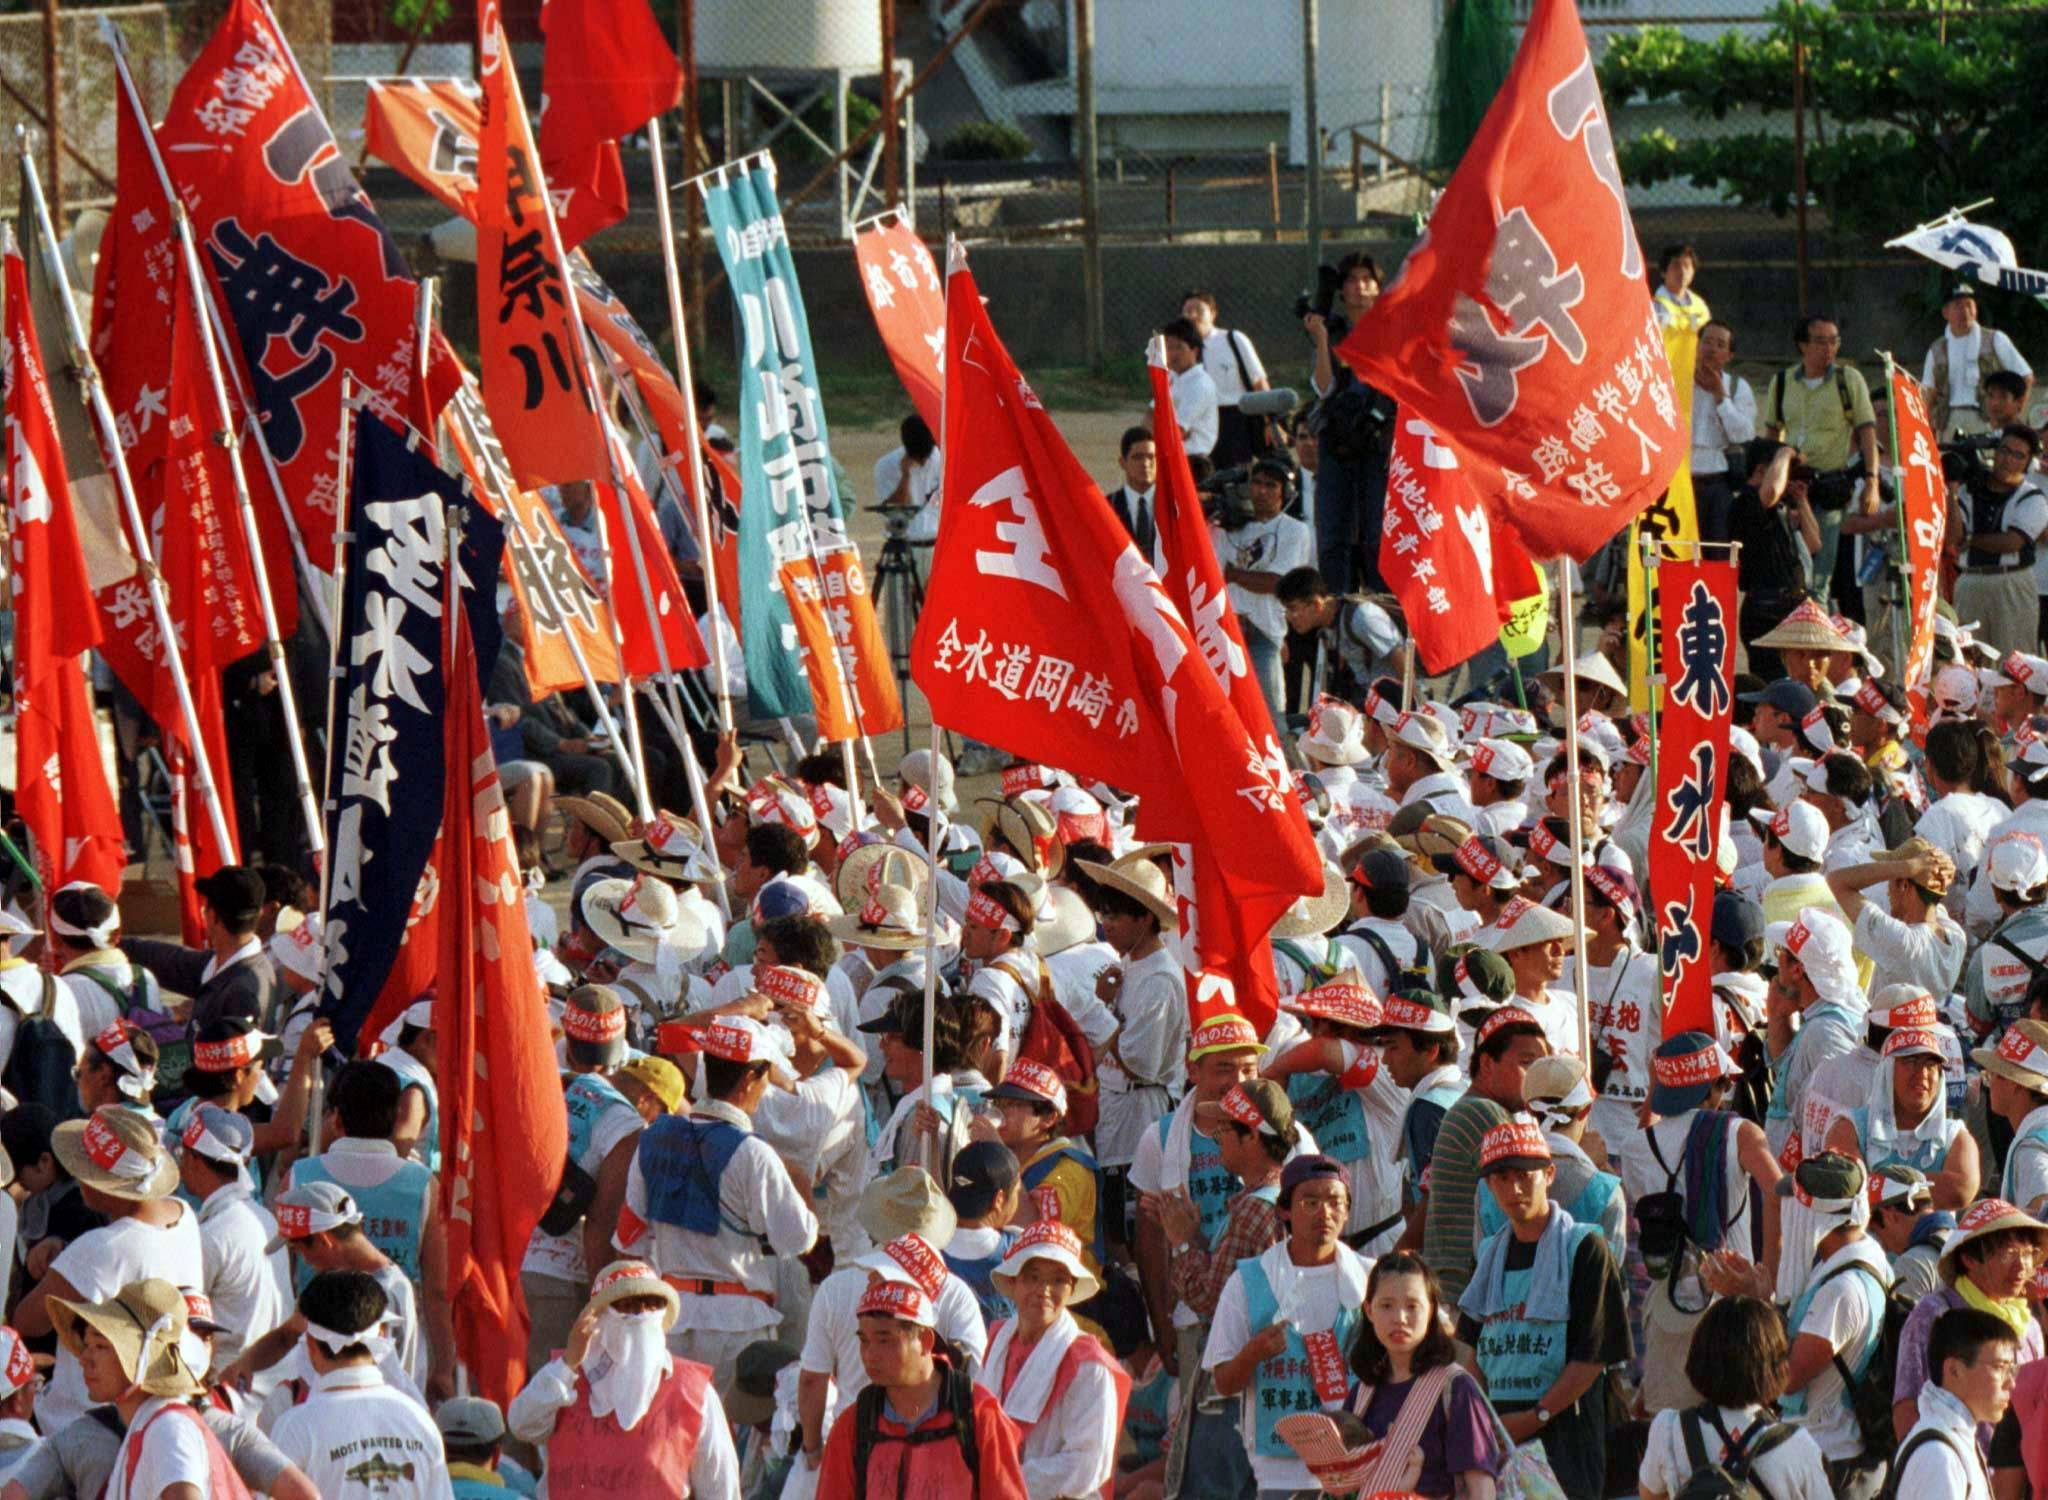 Anti-base demonstrators gather near the U.S. Futenma Air Base in Okinawa on May 15, 1997, to protest against the U.S. military presence on the 25th anniversary of Okinawa's 1972 reversion to Japanese rule.  | REUTERS